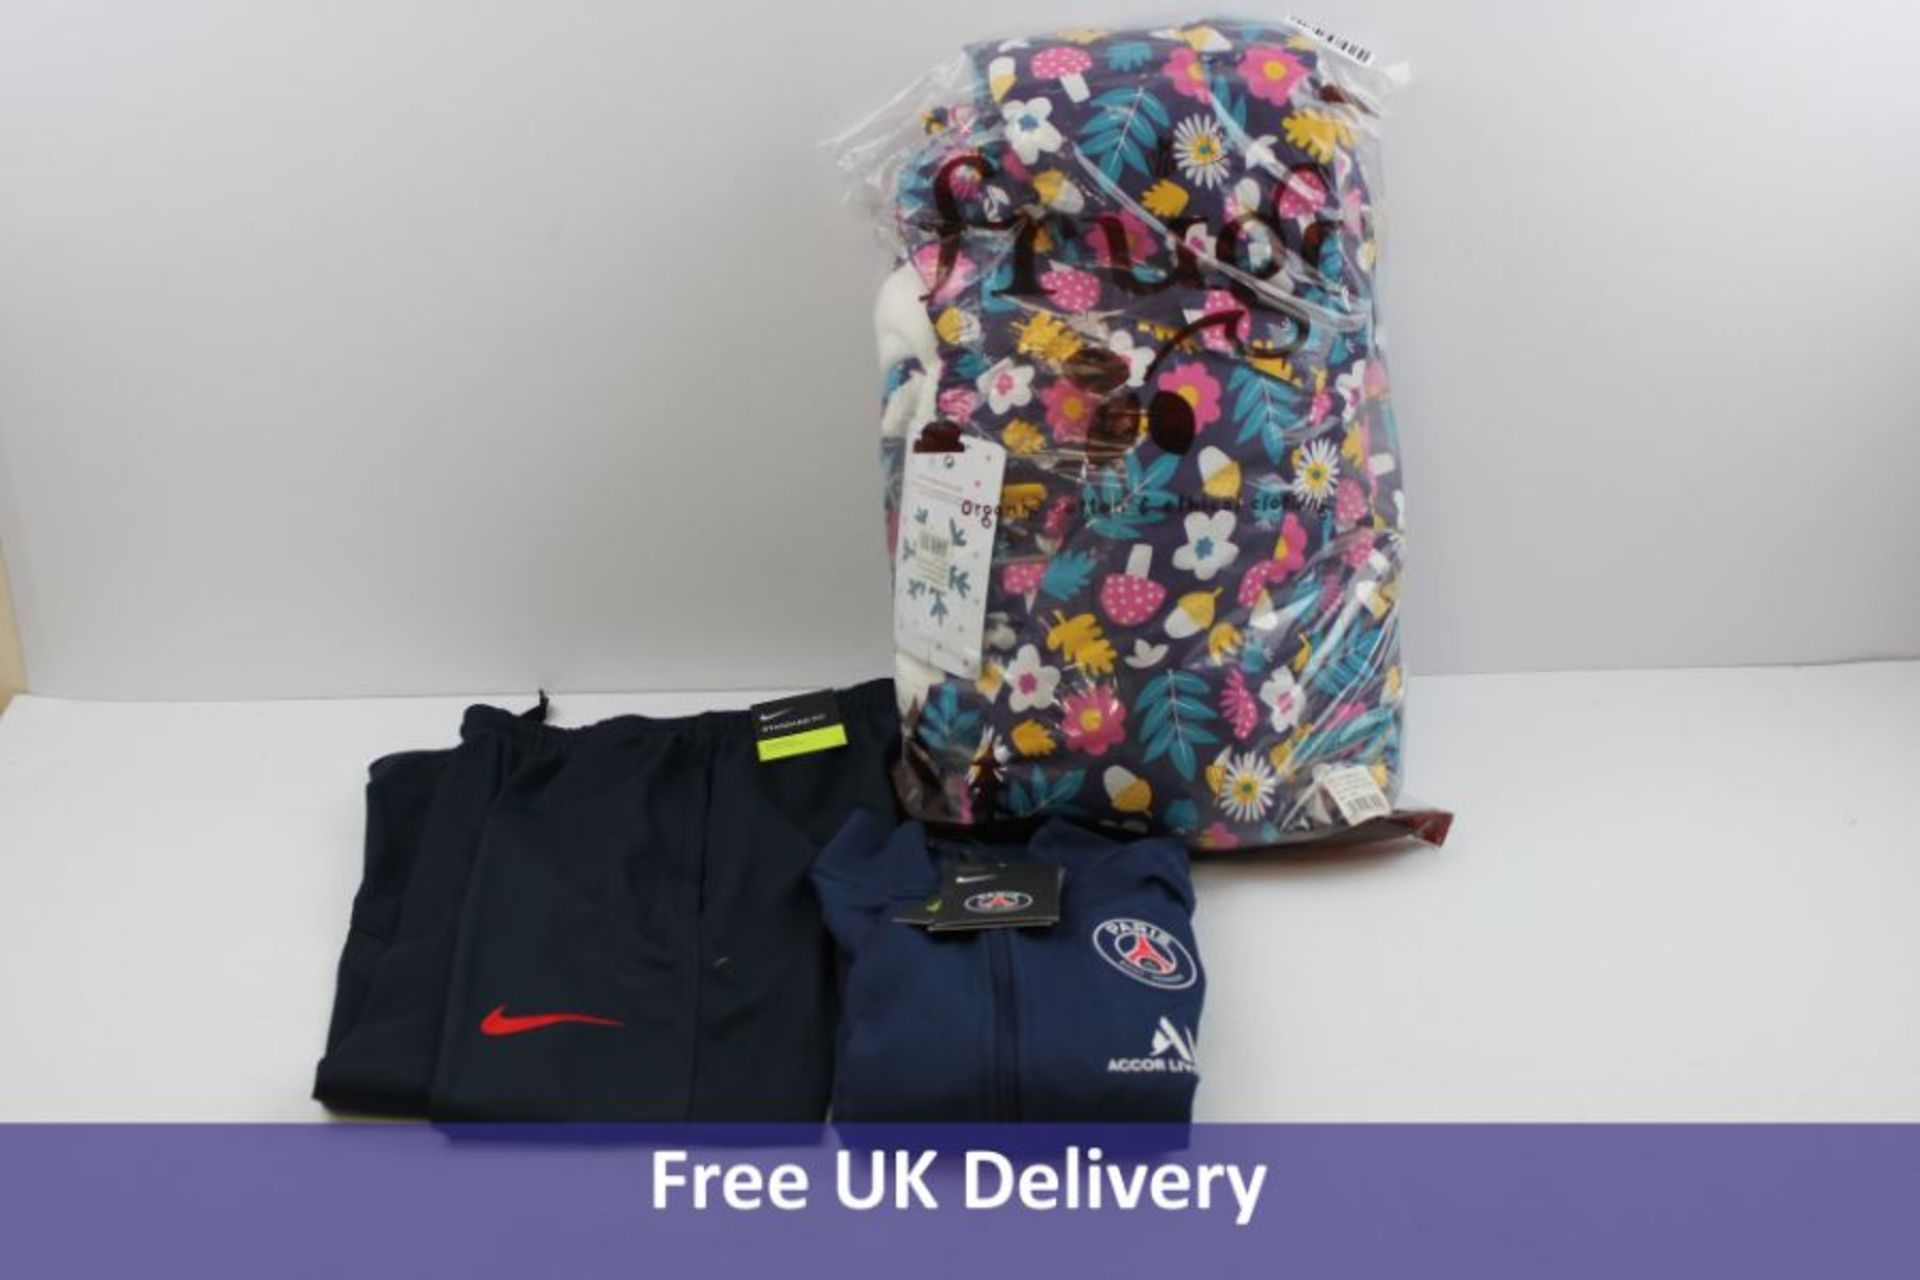 Two Items of Children's Clothing, Ski Jacket and Tracksuit